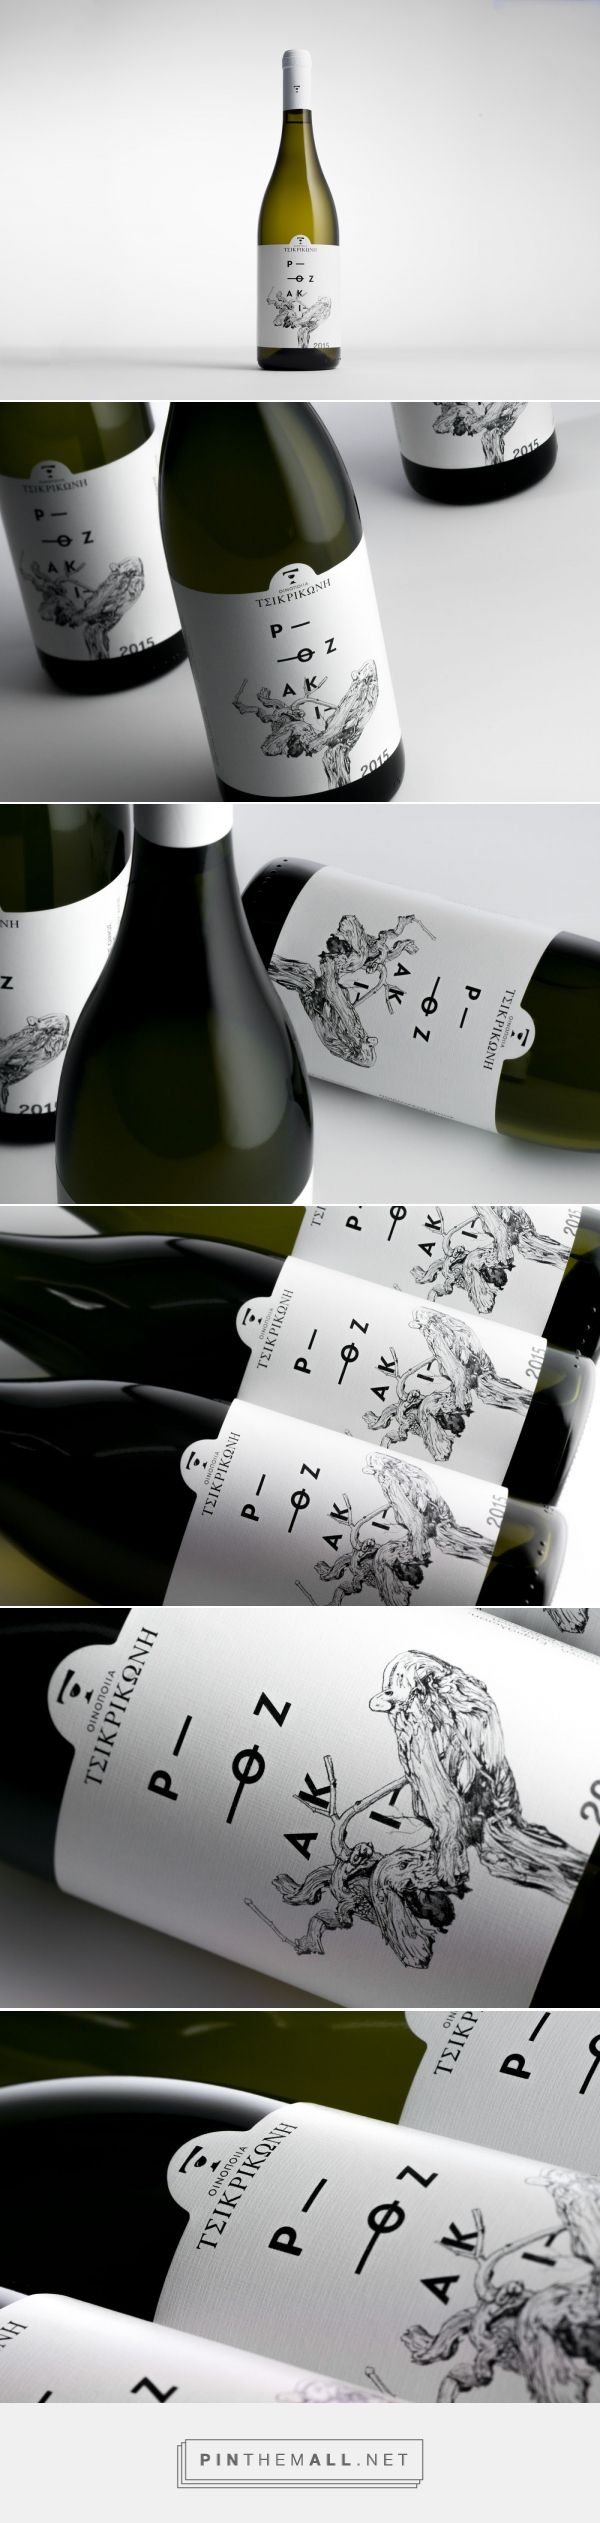 Rozaki Wine - Packaging of the World - Creative Package Design Gallery - http://www.packagingoftheworld.com/2016/12/rozaki.html